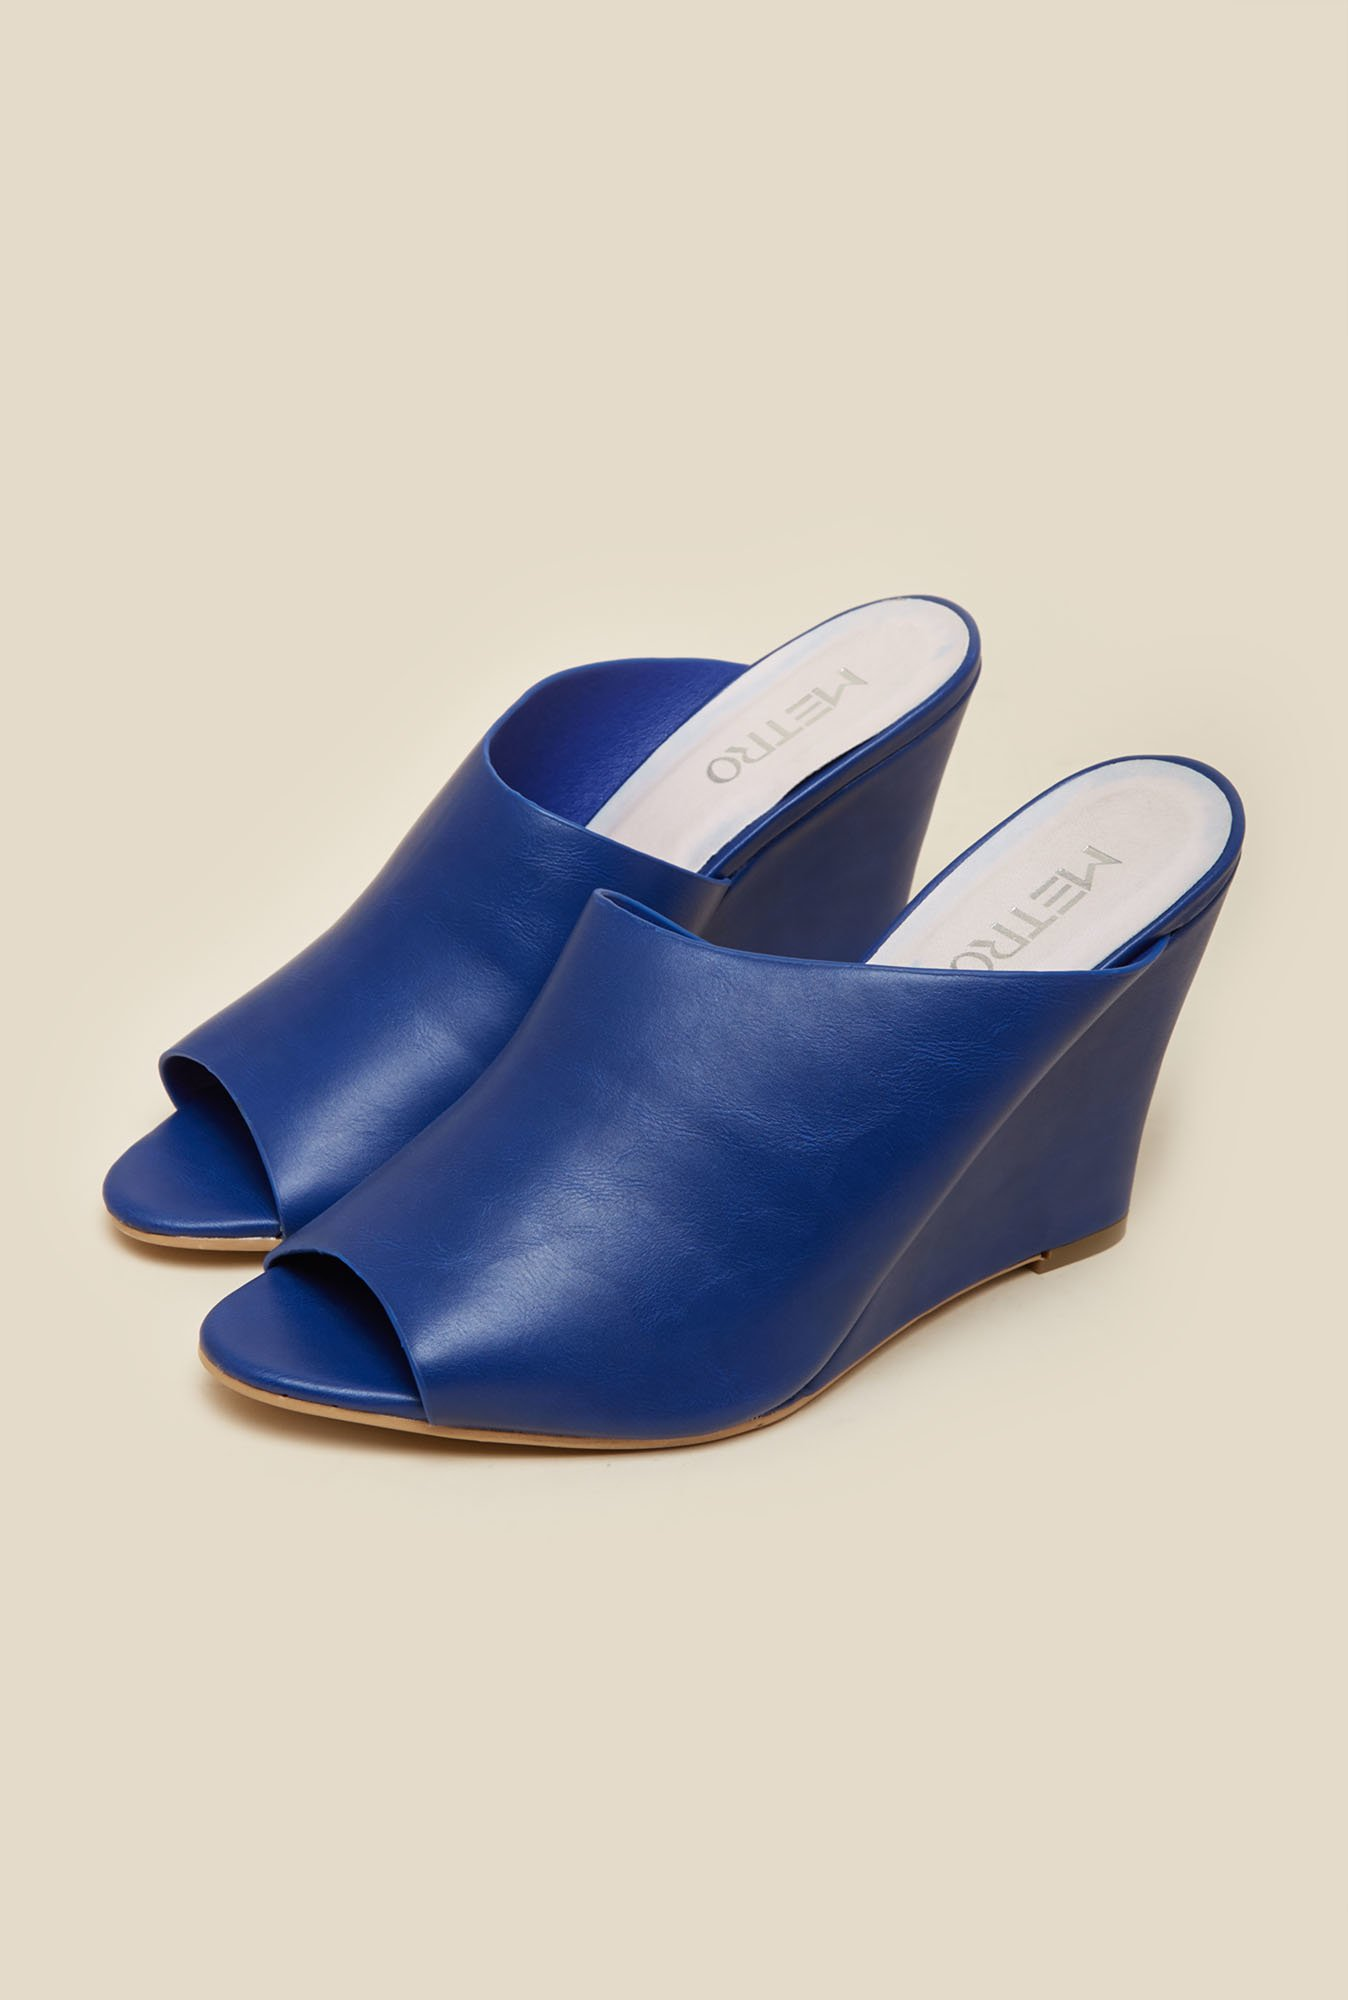 Metro Navy Mule Wedges